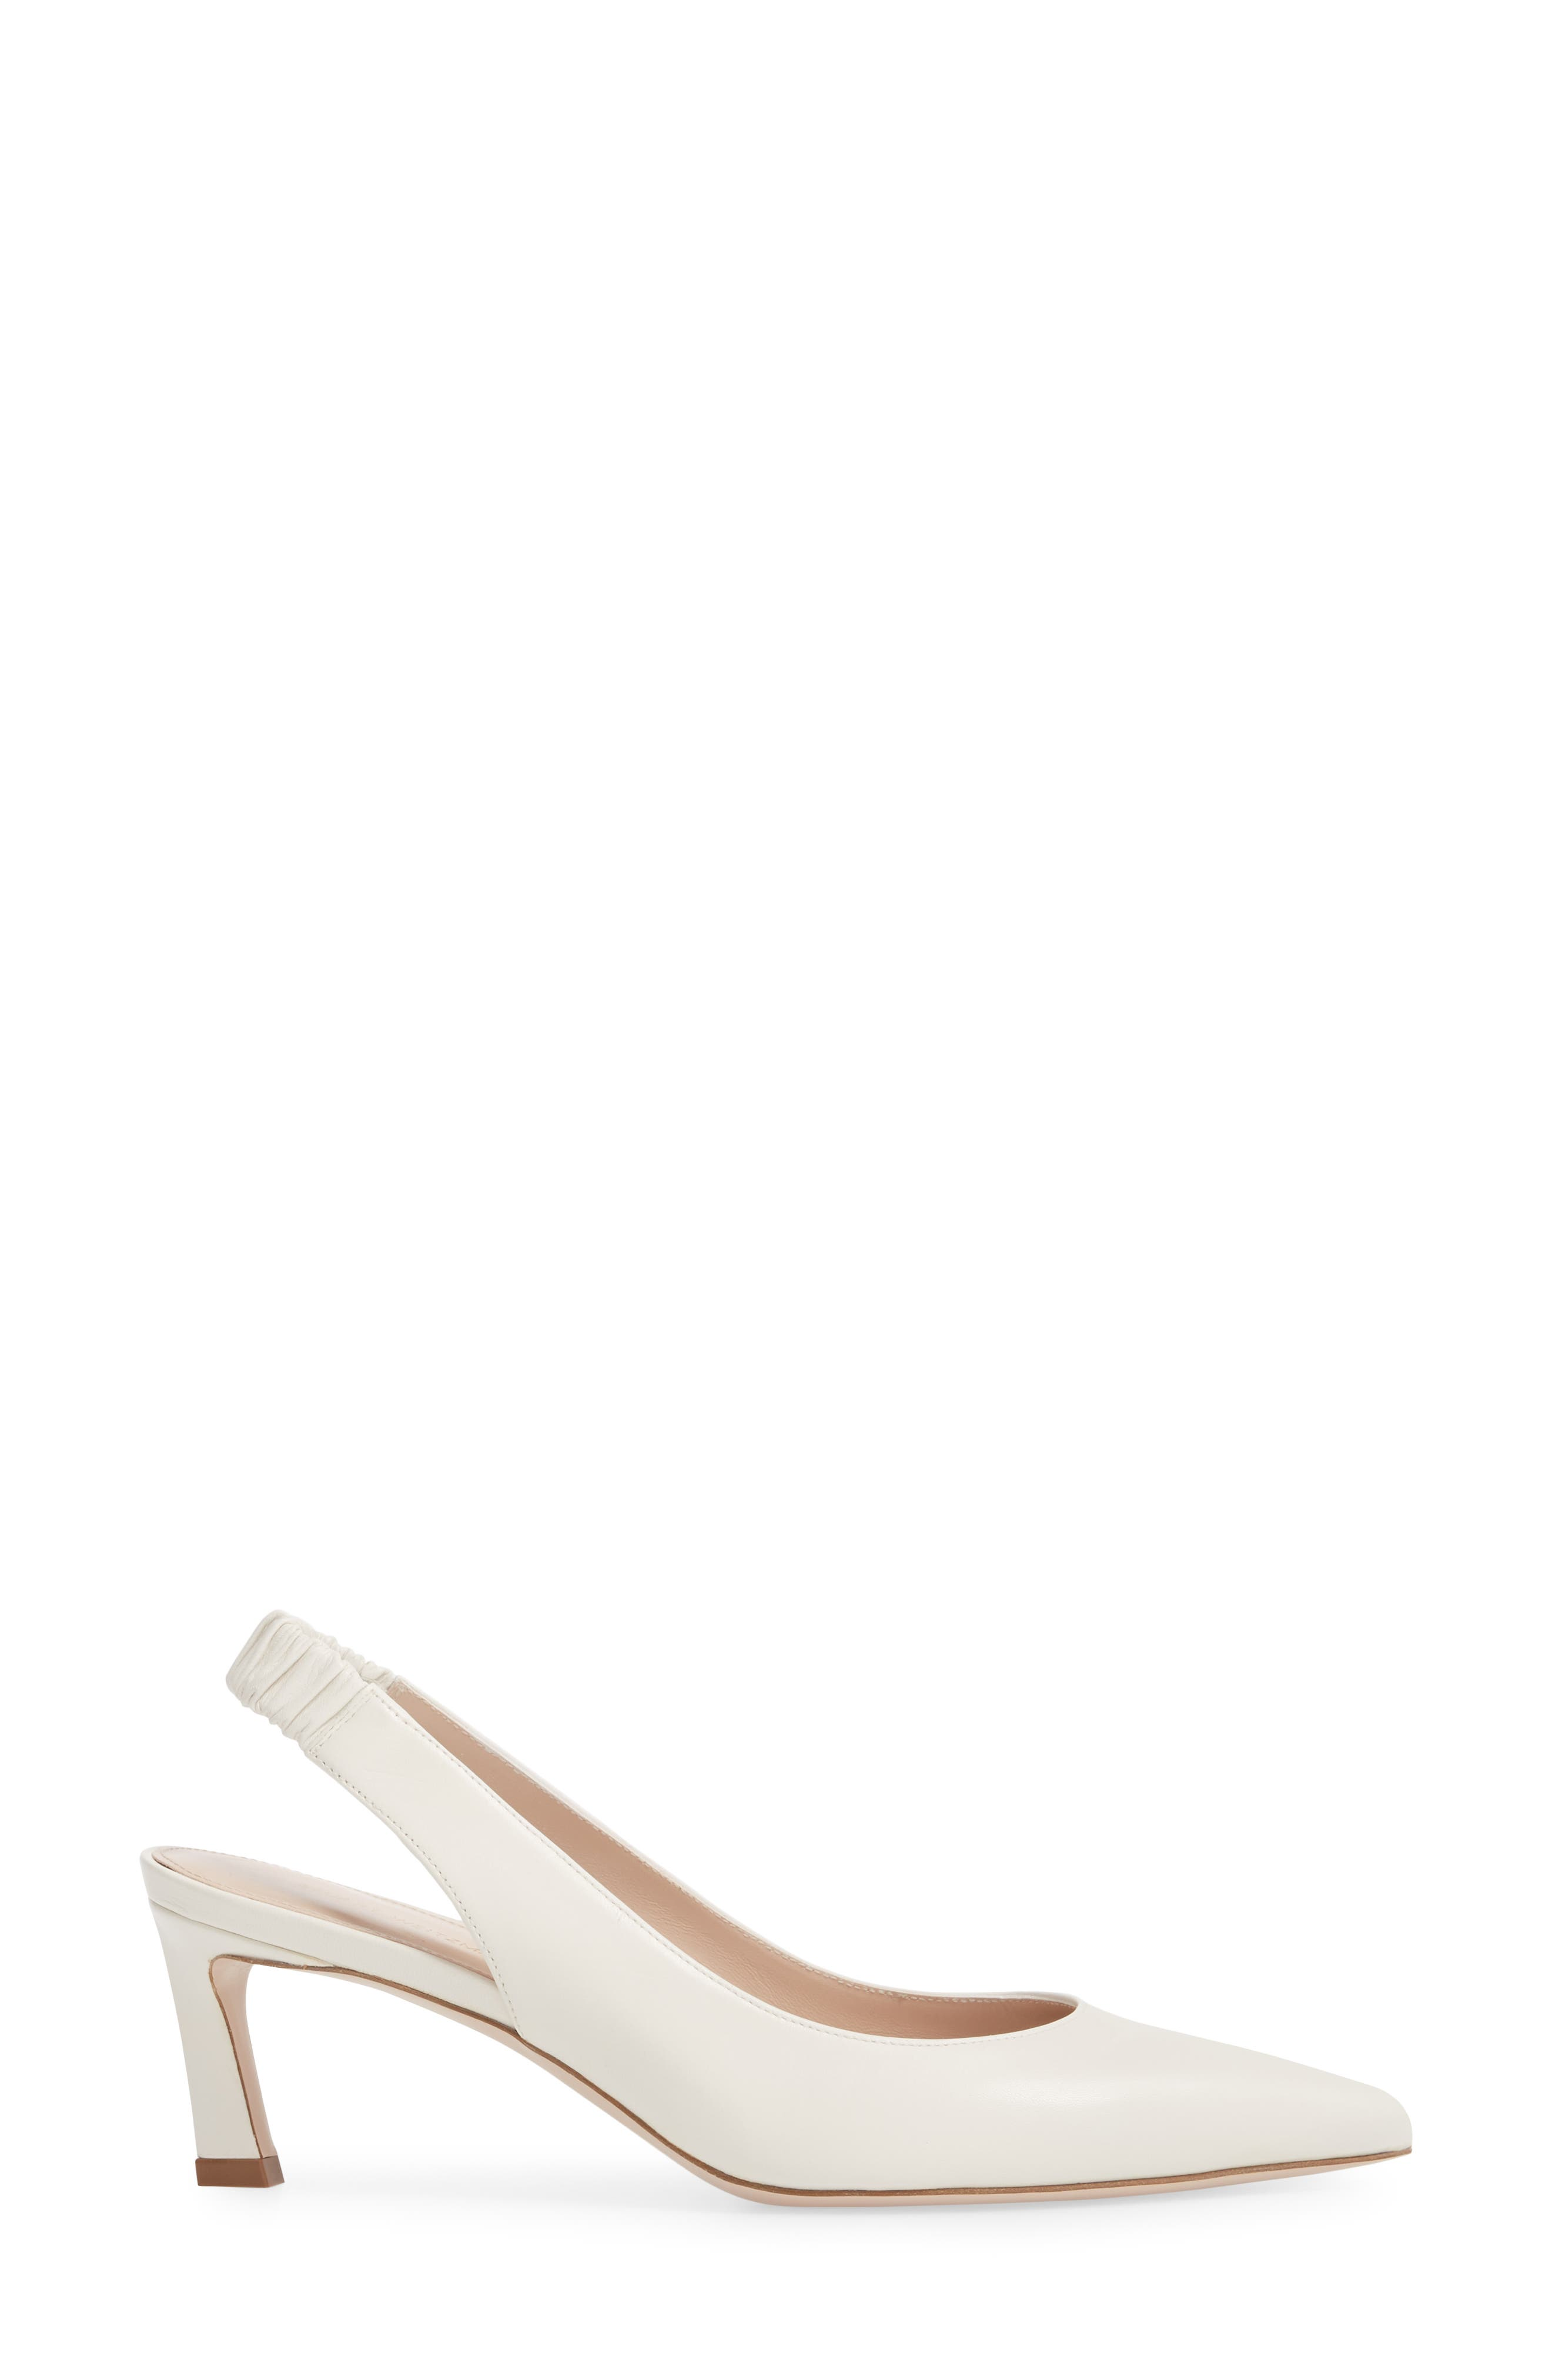 Hayday Slingback Pump,                             Alternate thumbnail 10, color,